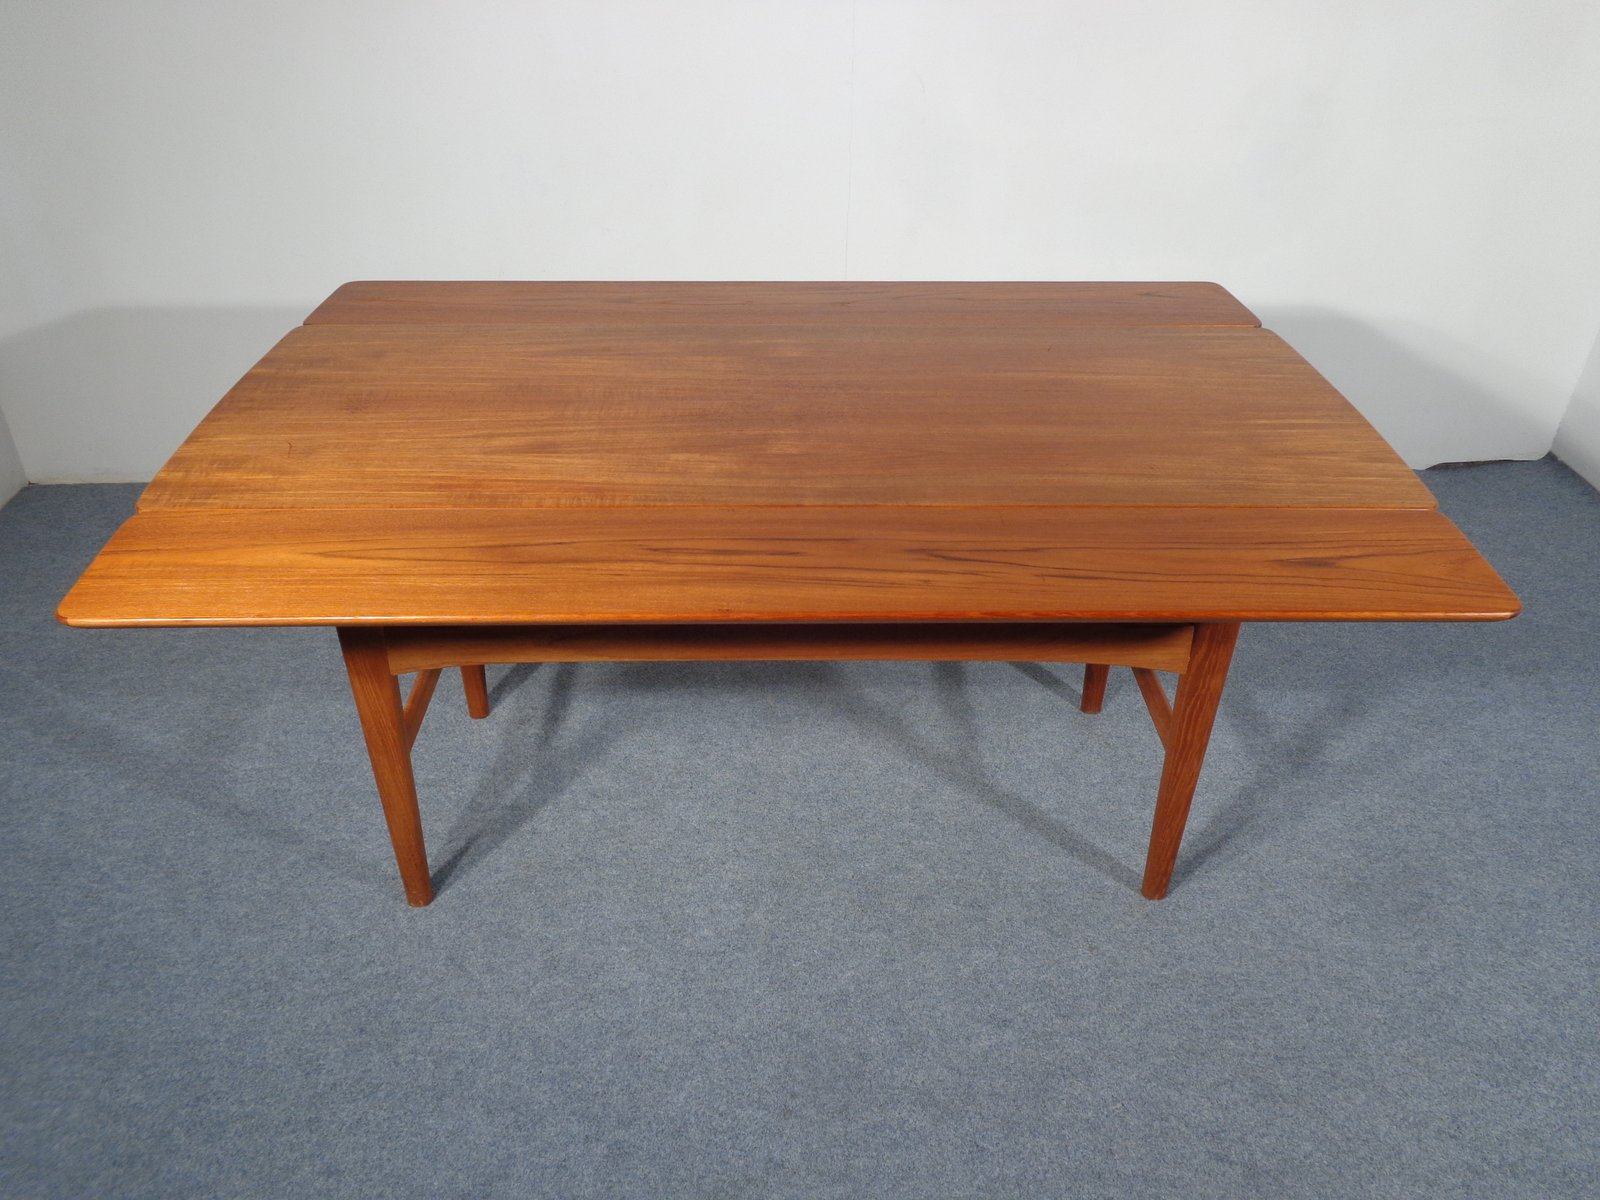 Vintage Extendable Teak Table By Niels Bach